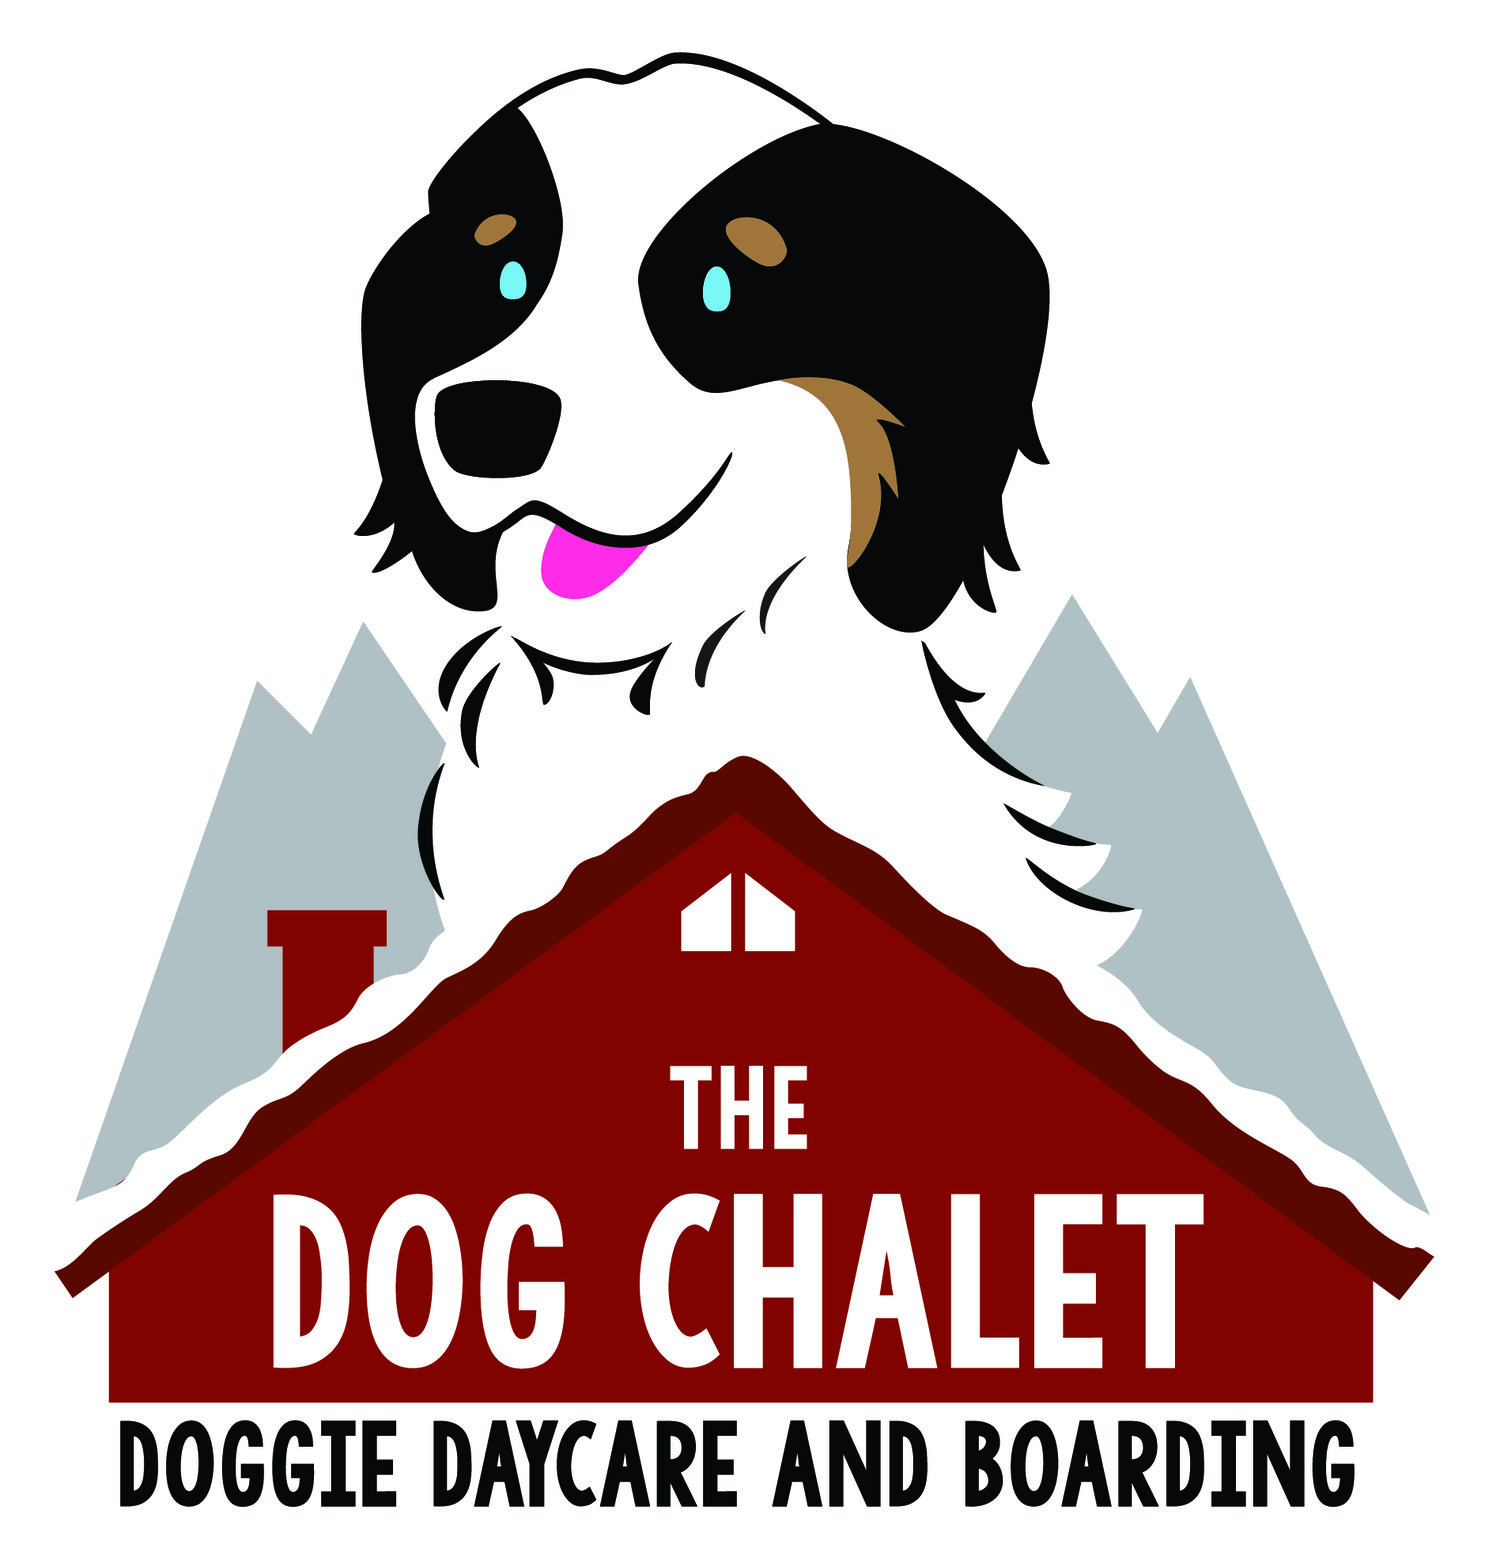 THE DOG CHALET